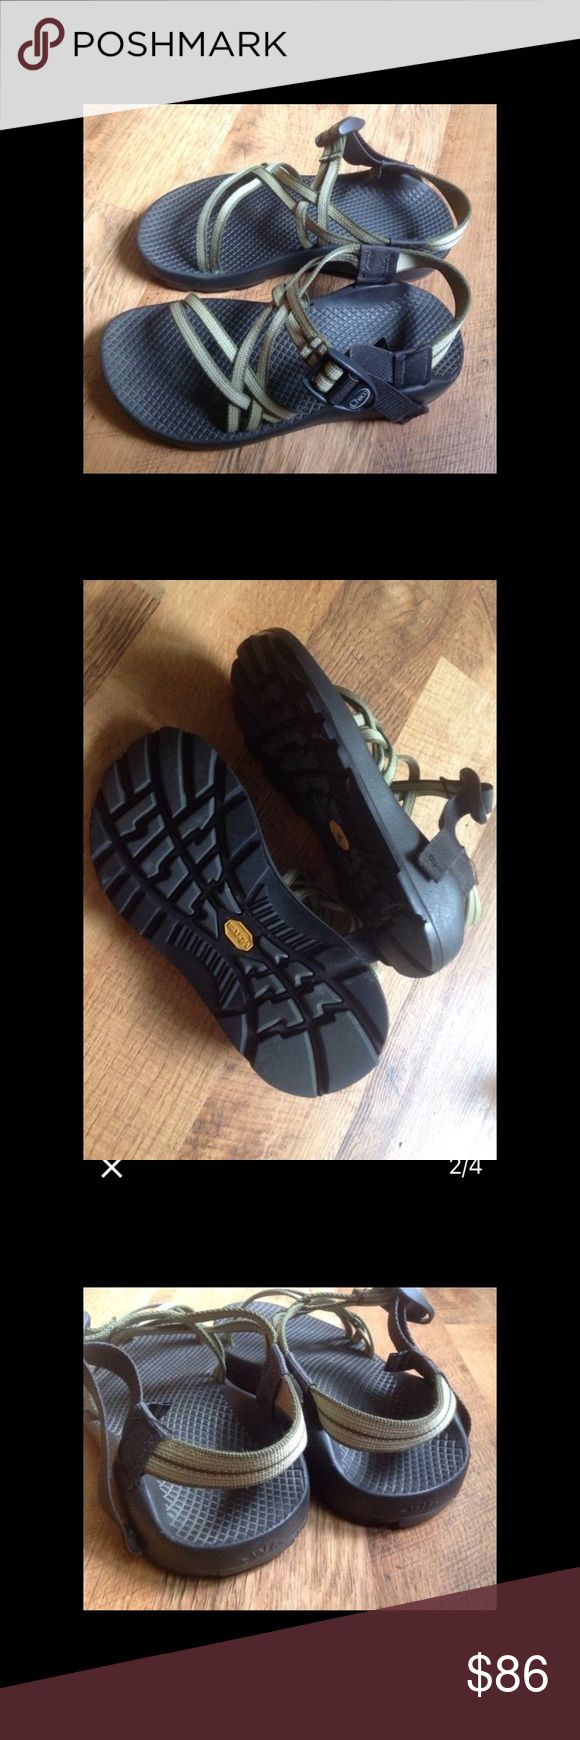 Sandals or shoes for hiking - Chaco Hiking Sandals Women S 6 Wide Chaco Sandals Women S Size 6 Wide Hiking Vibram